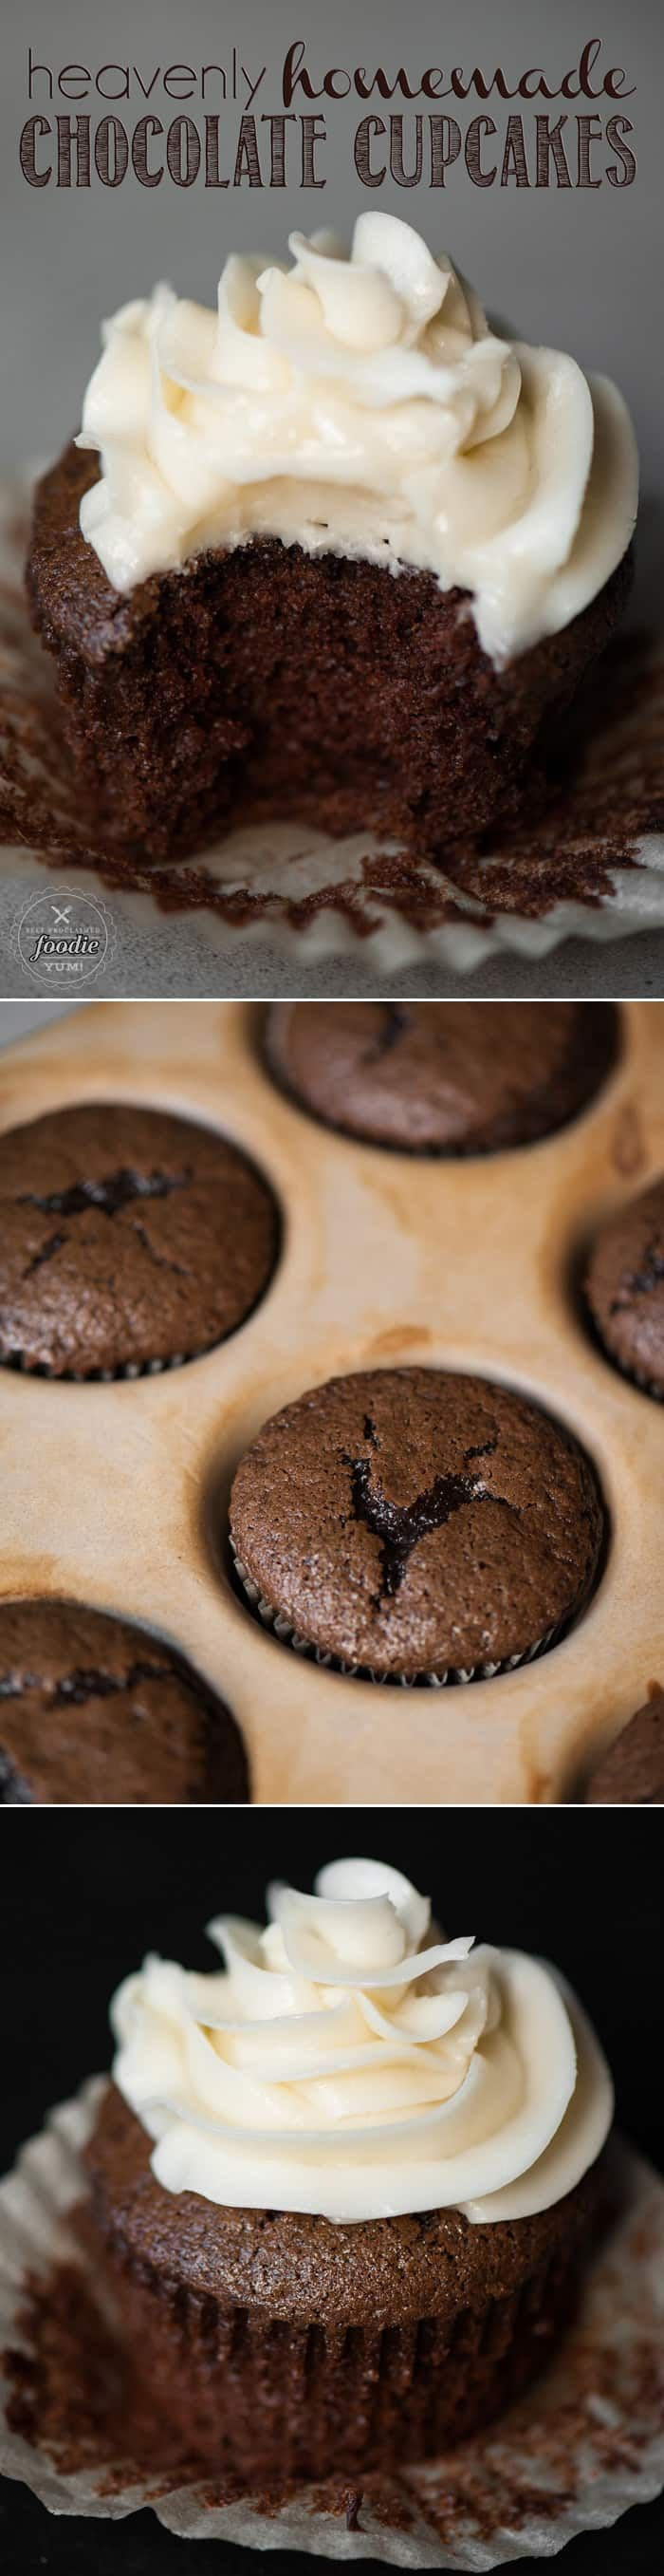 Heavenly Homemade Chocolate Cupcakes, made with cocoa and strong hot coffee, are the most decadent and moist chocolate cupcake recipe you'll ever enjoy!